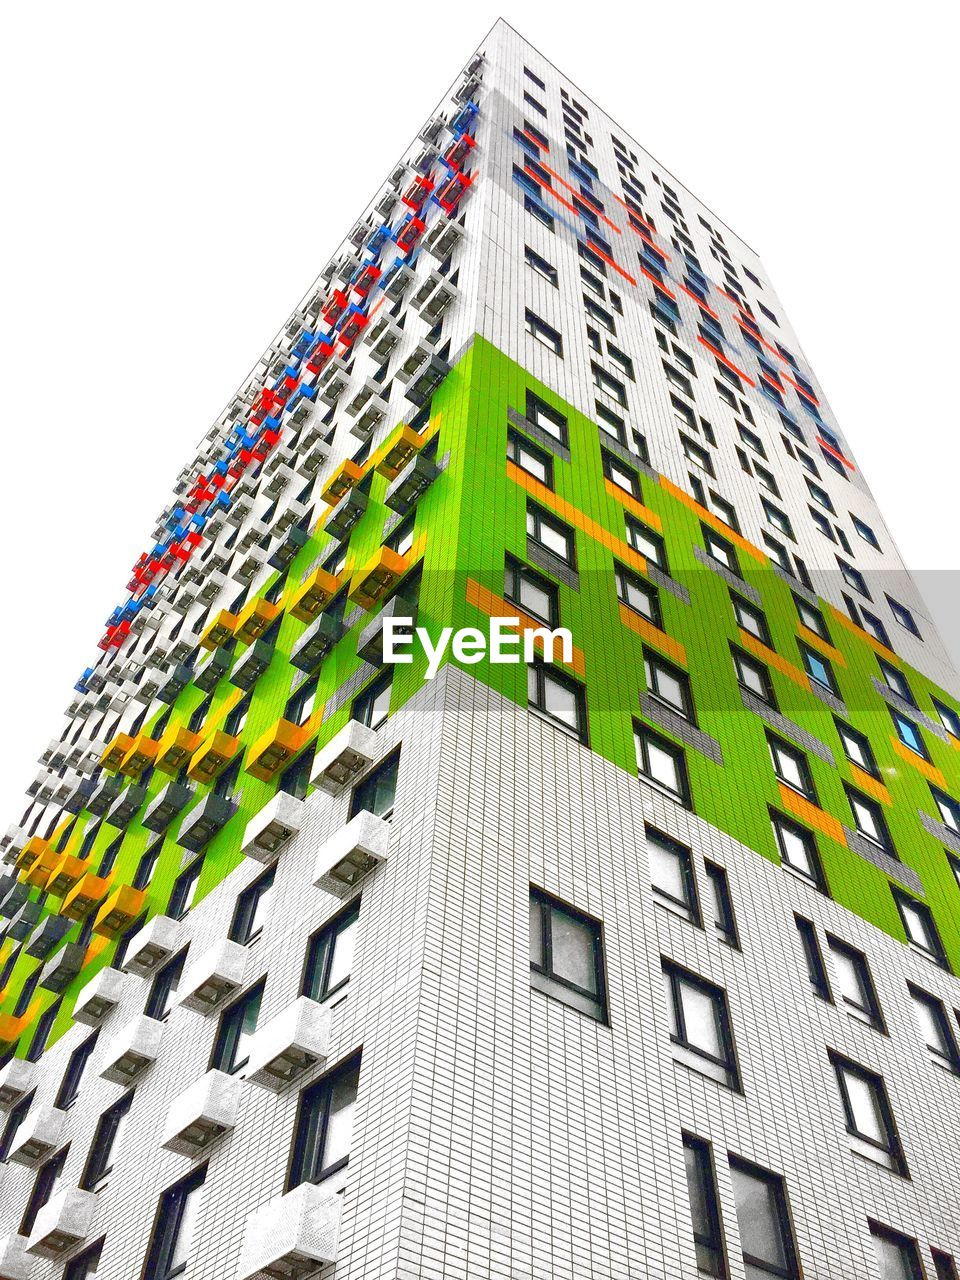 building exterior, built structure, architecture, low angle view, building, city, modern, sky, clear sky, no people, office building exterior, nature, window, tall - high, day, office, outdoors, multi colored, tower, residential district, skyscraper, apartment